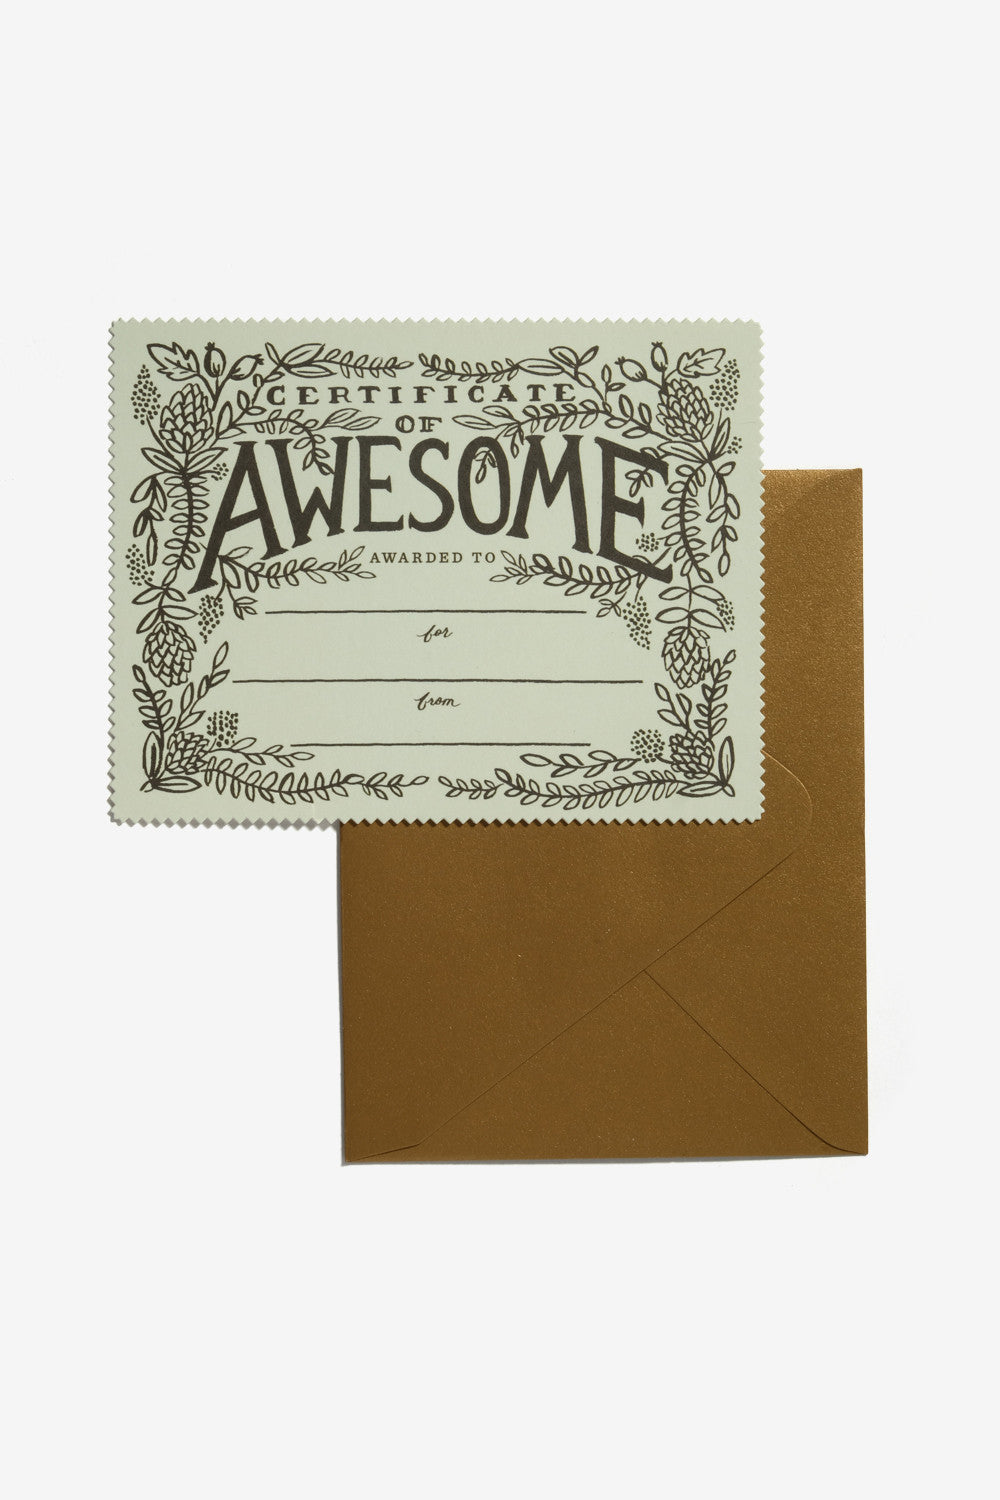 Certificate of Awesome Card, Office, Rifle Paper Co. - Six and Sons